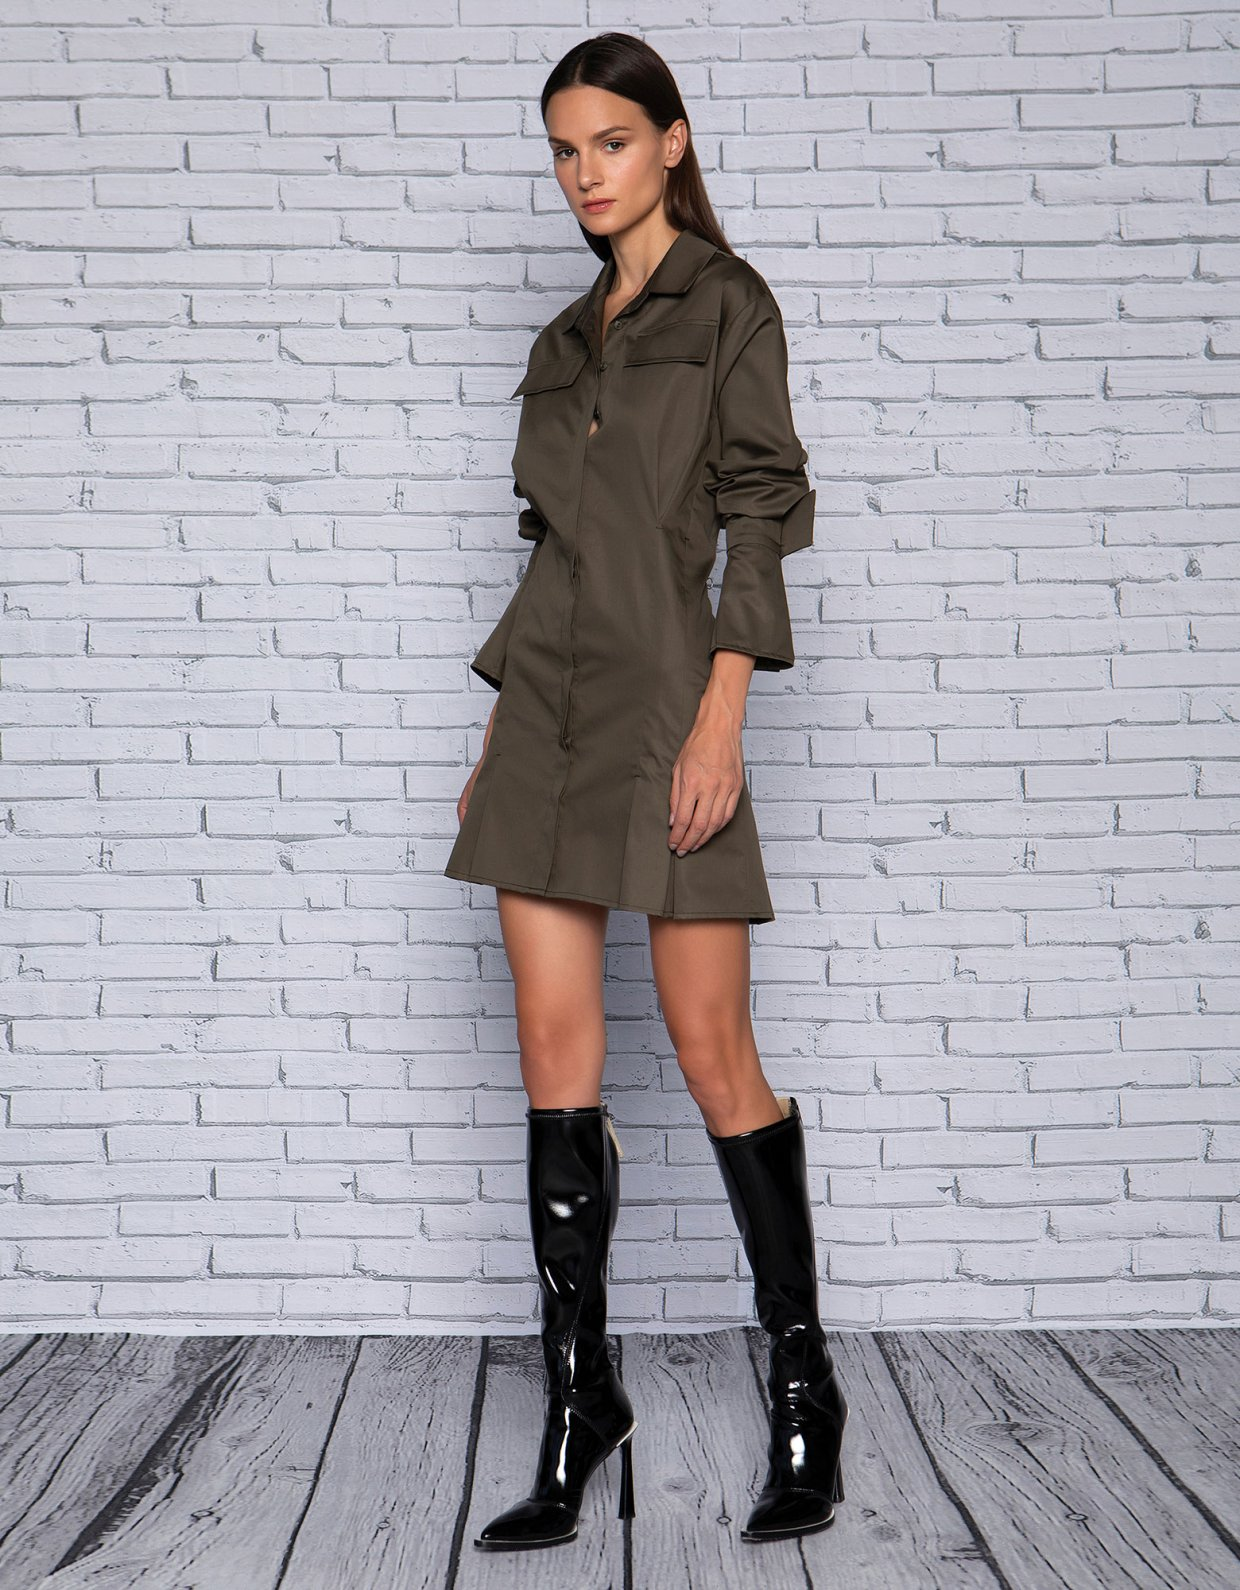 Peace & Chaos Olive dress